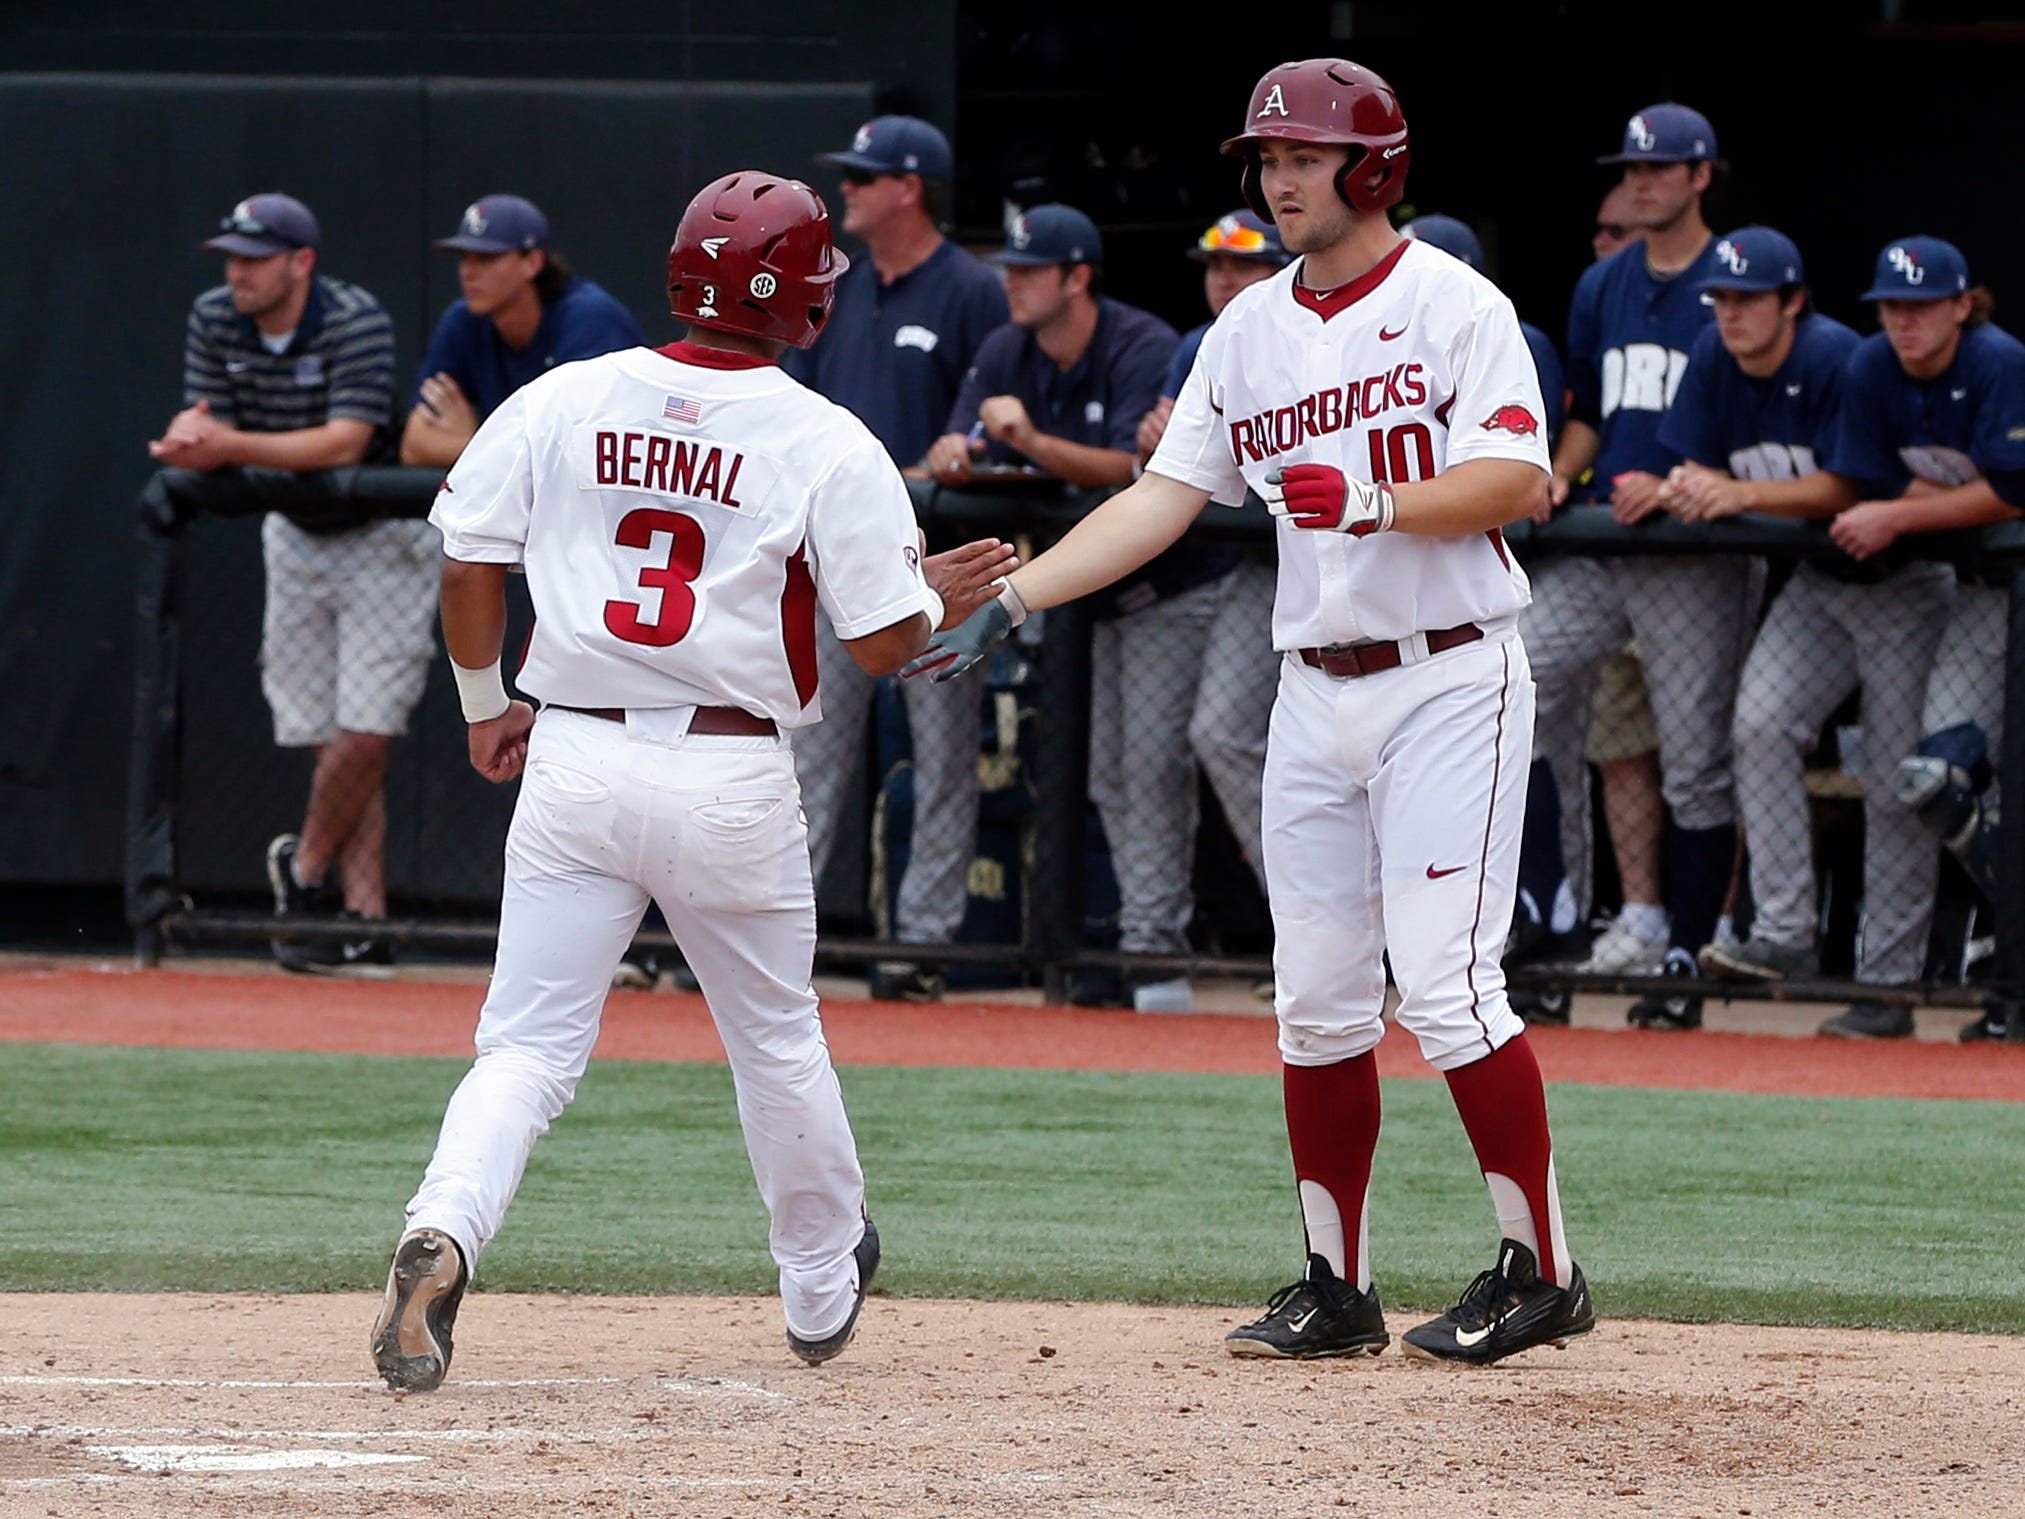 Arkansas's Michael Bernal (3) is congratulated by Joe Serrano (10) after Bernal scored off a single by Tucker Pennell against Oral Roberts in the third inning of a game at the Stillwater Regional of the NCAA college baseball tournament in Stillwater, Okla., Friday, May 29, 2015. (AP Photo/Sue Ogrocki)